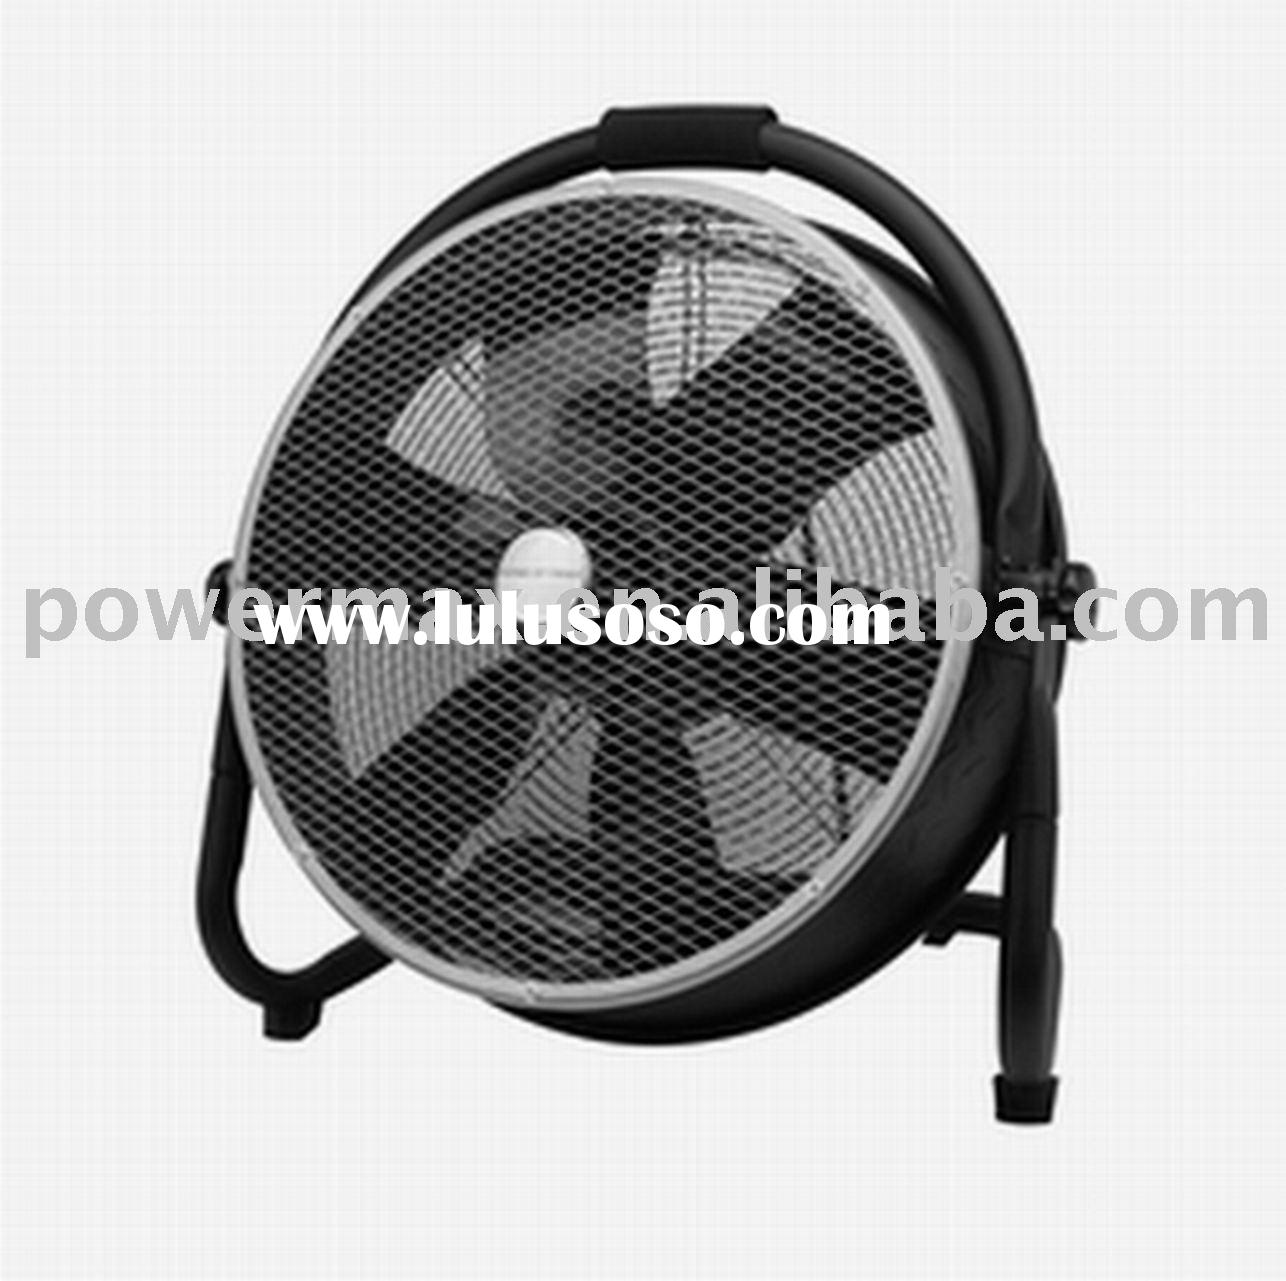 Aloha breeze tower fan manual 84001 download